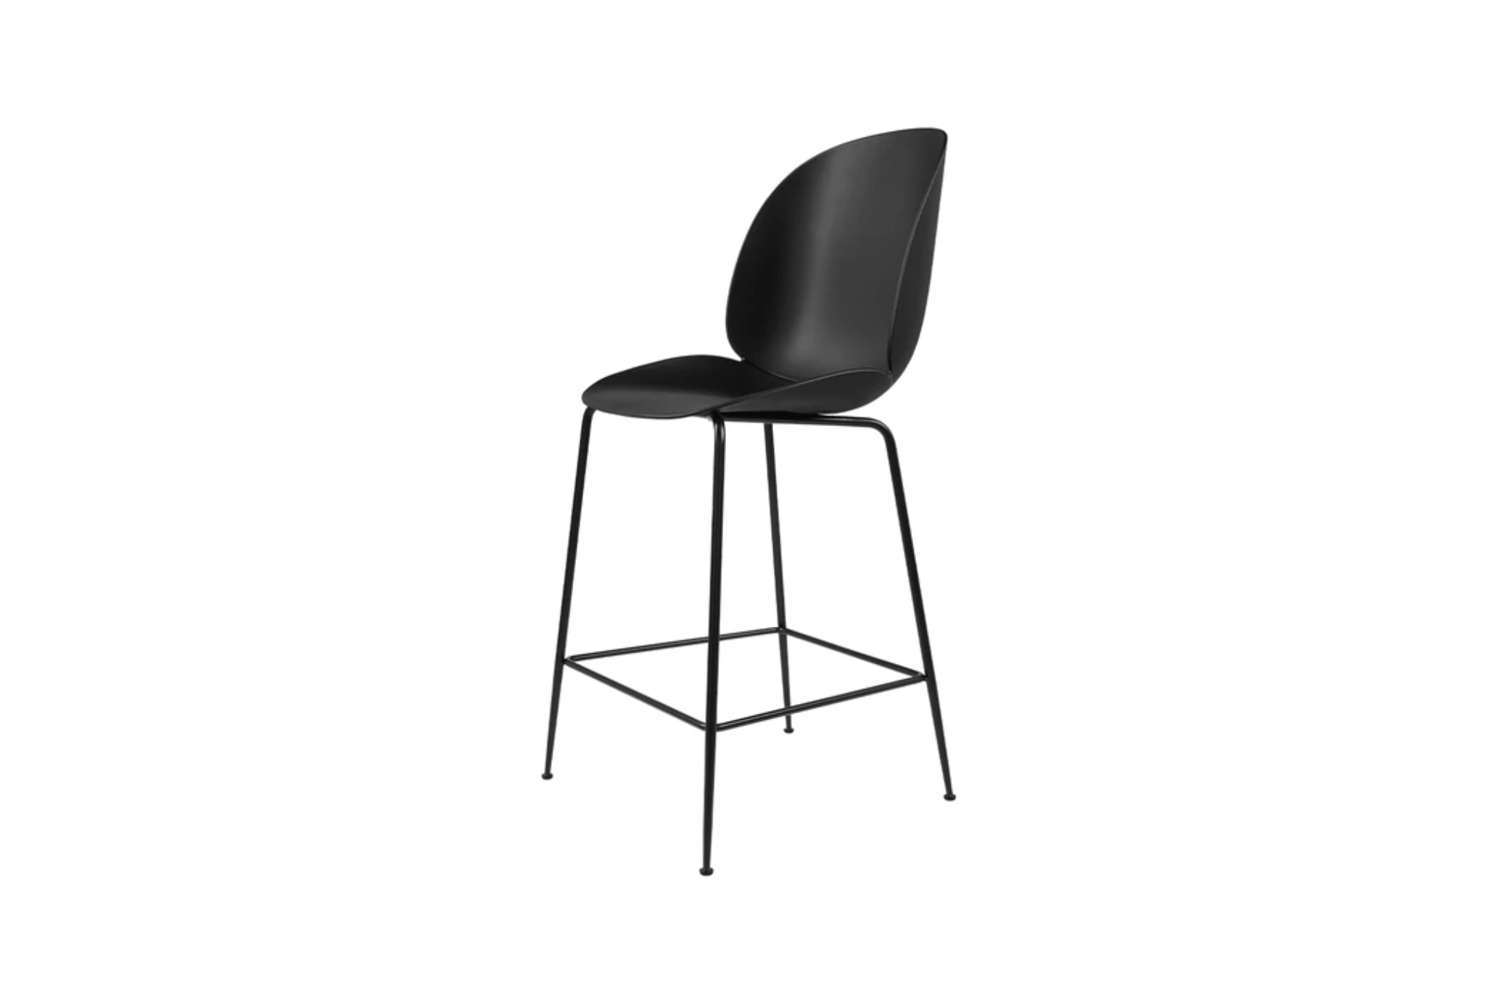 The Gubi Beetle Counter Stool is available in a range of colors for both the base and shell; $545 at Lekker Home.